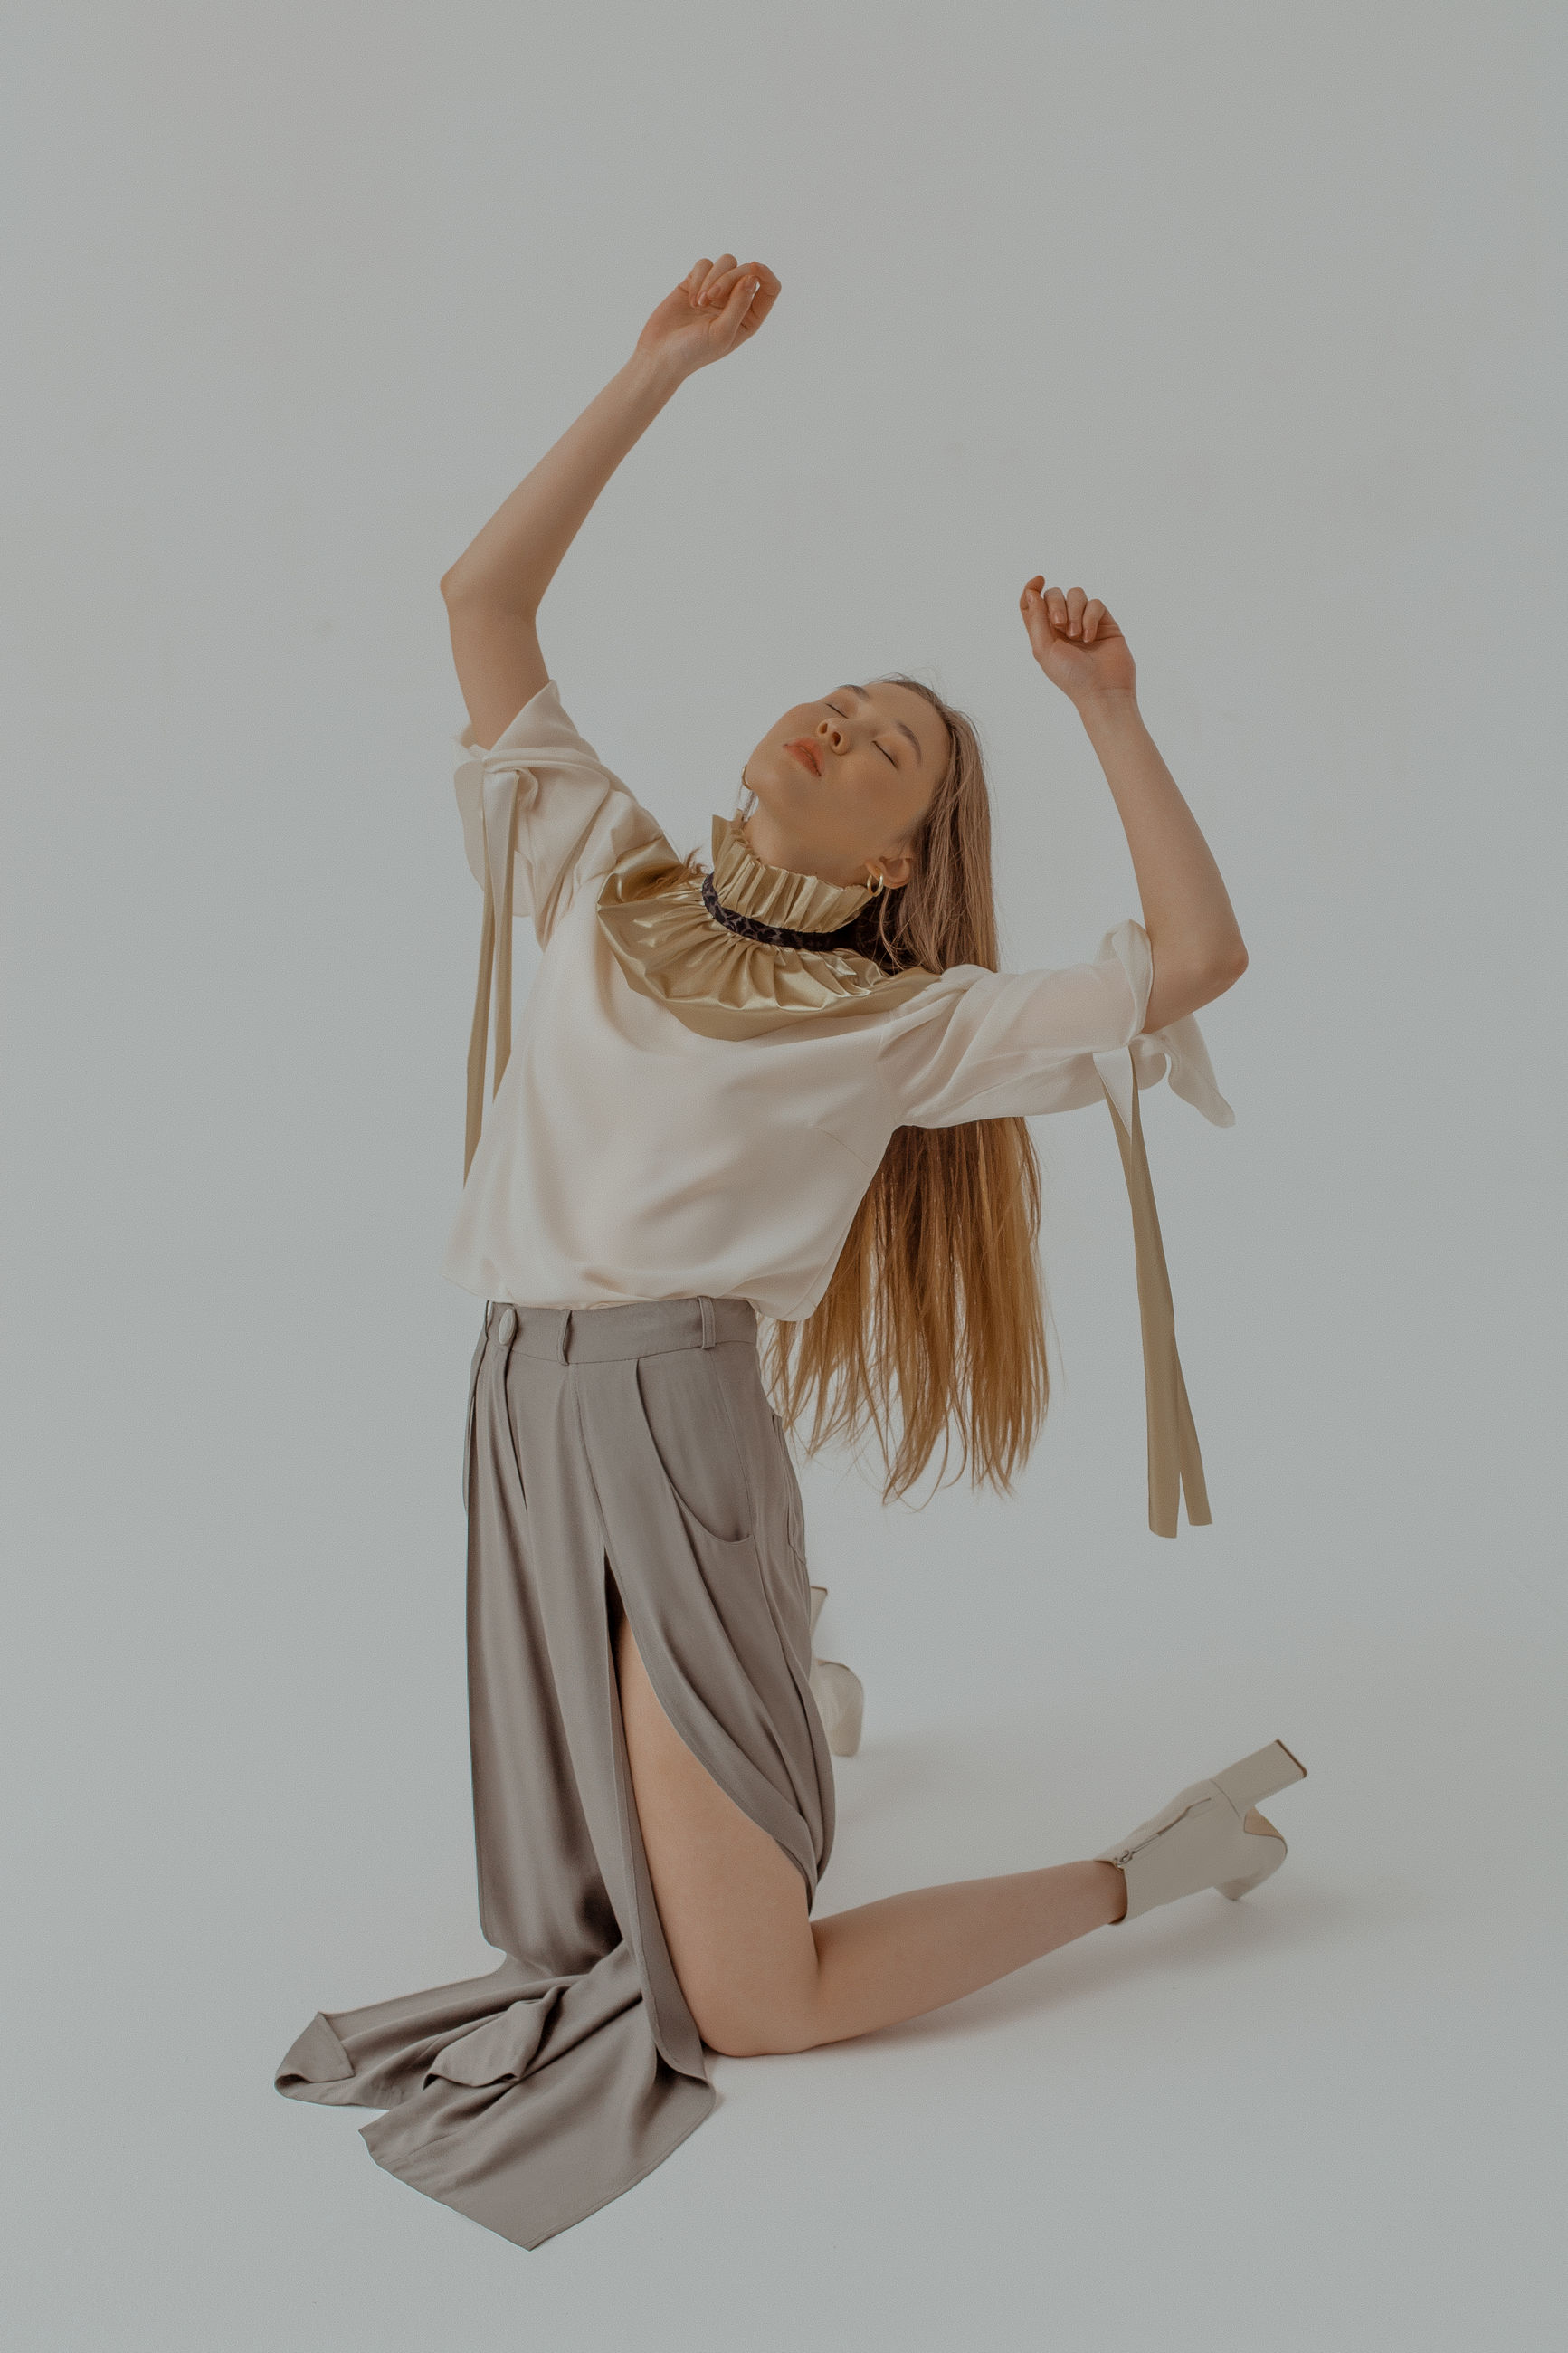 studio shot, indoors, white background, full length, one person, gray background, gray, cut out, young women, human arm, arms raised, women, dancing, lifestyles, young adult, arts culture and entertainment, skill, ballet, hairstyle, beautiful woman